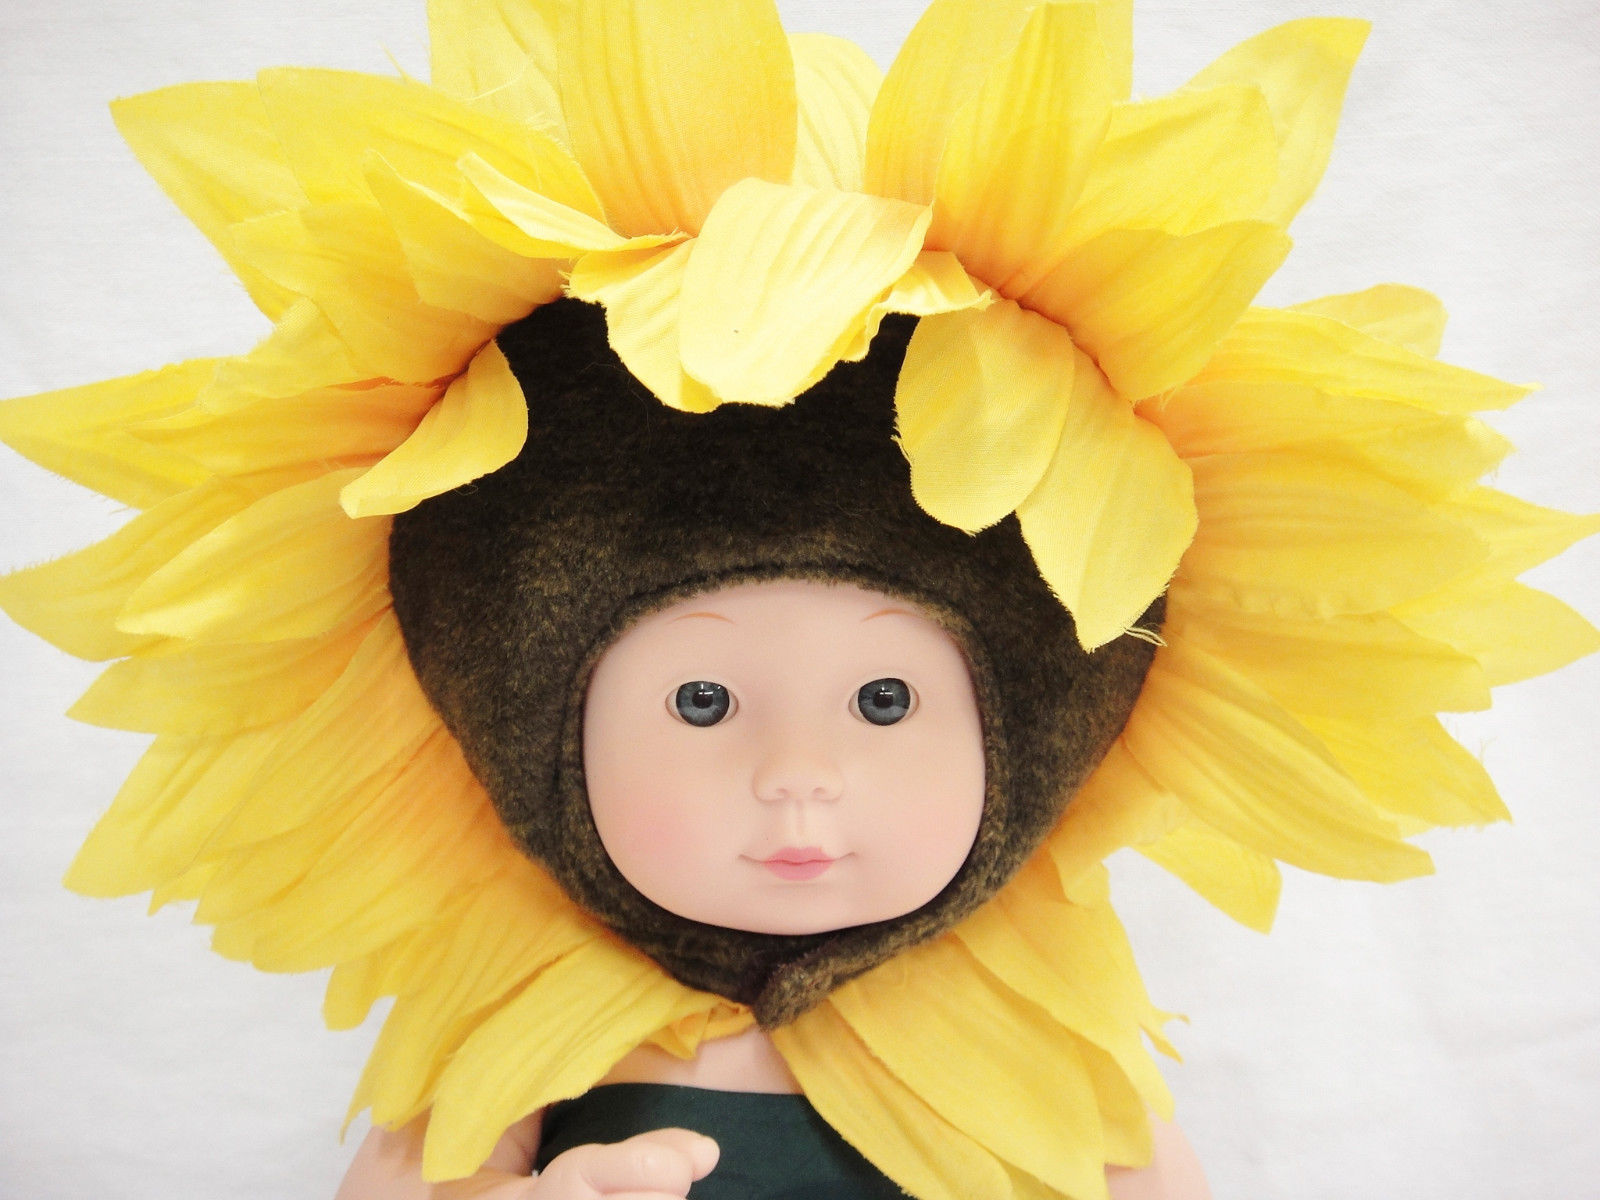 ... Anne Geddes Doll Sunflower Baby 2000 Unimax Jointed Body Adorable ...  sc 1 st  Bonanza & Anne Geddes Doll Sunflower Baby 2000 Unimax and 50 similar items